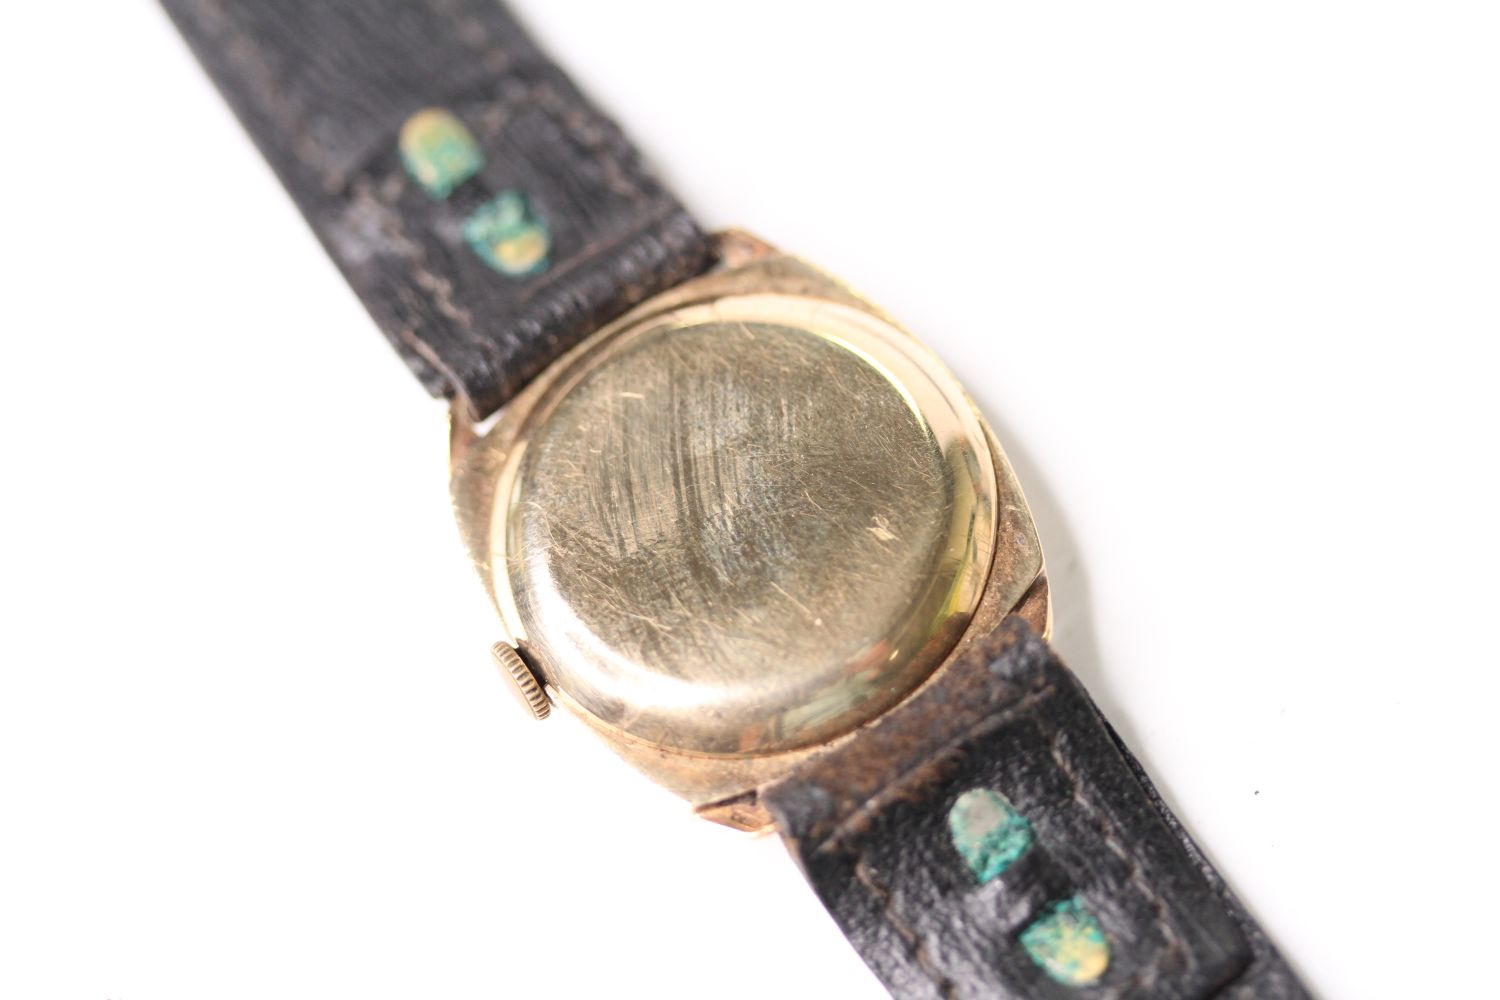 9CT GOLD TRENCH WRISTWATCH, circular silver dial with arabic numbers, small seconds at 6 0'clock, - Image 3 of 5